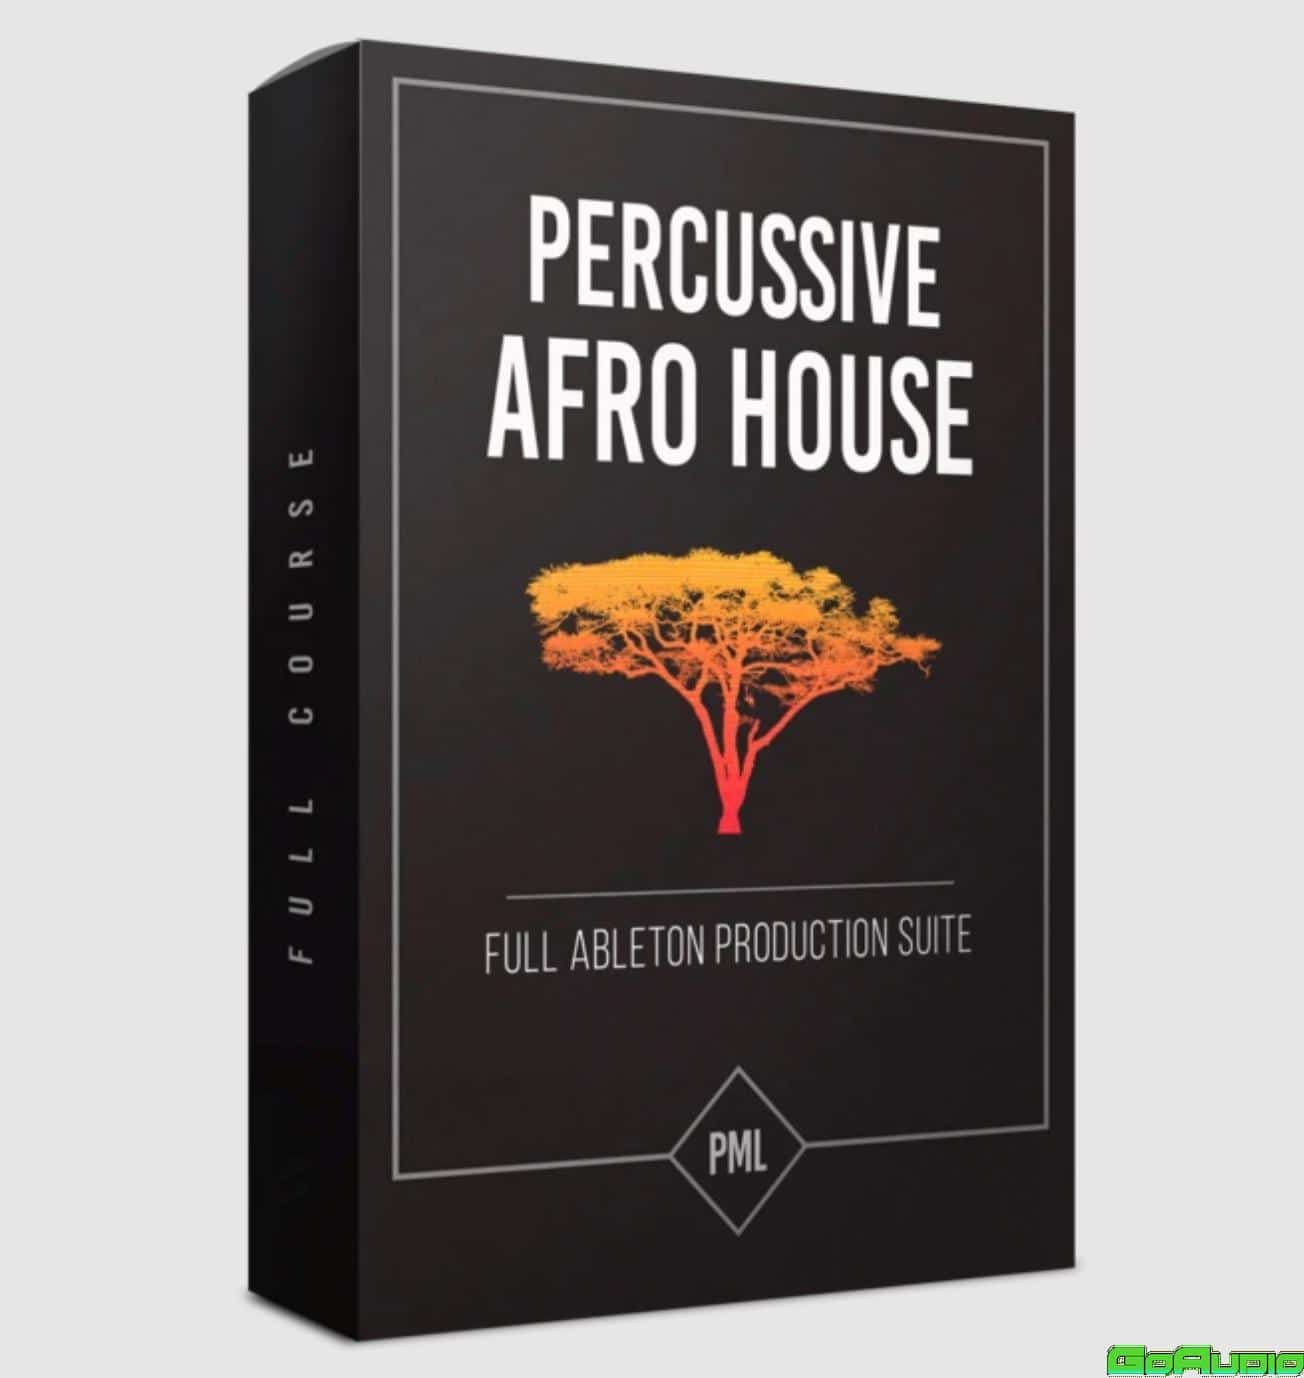 PML Percussive Afro House – Full Ableton Production Suite